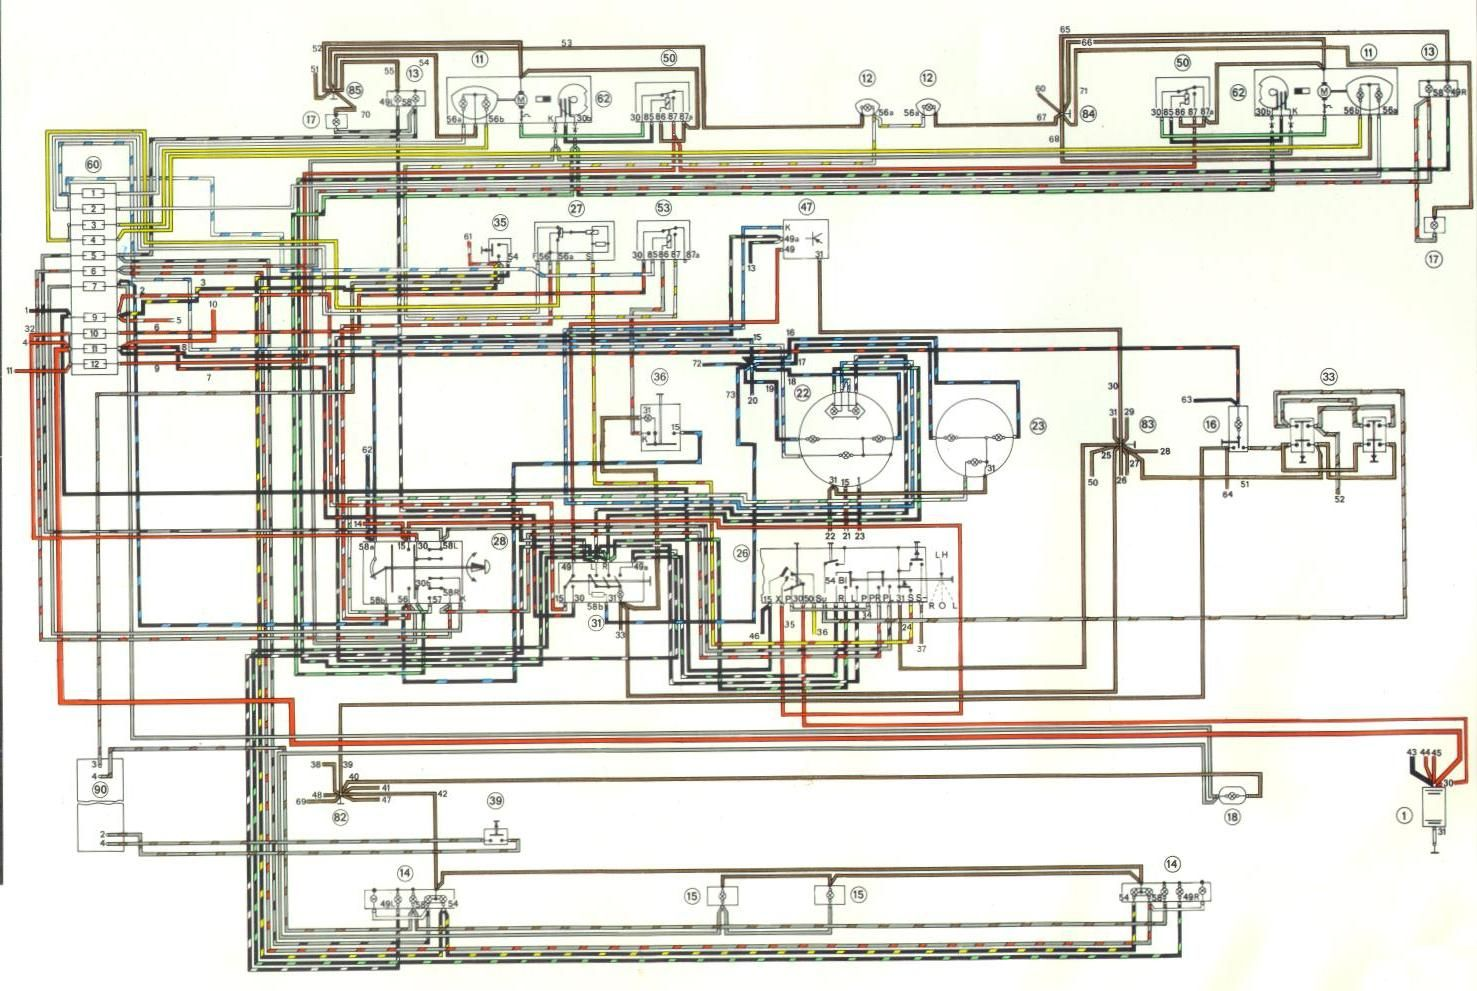 Electrical Diagram 73 Porsche 914 part 1 Electrical Diagram, Porsche 914,  Teen, Classic